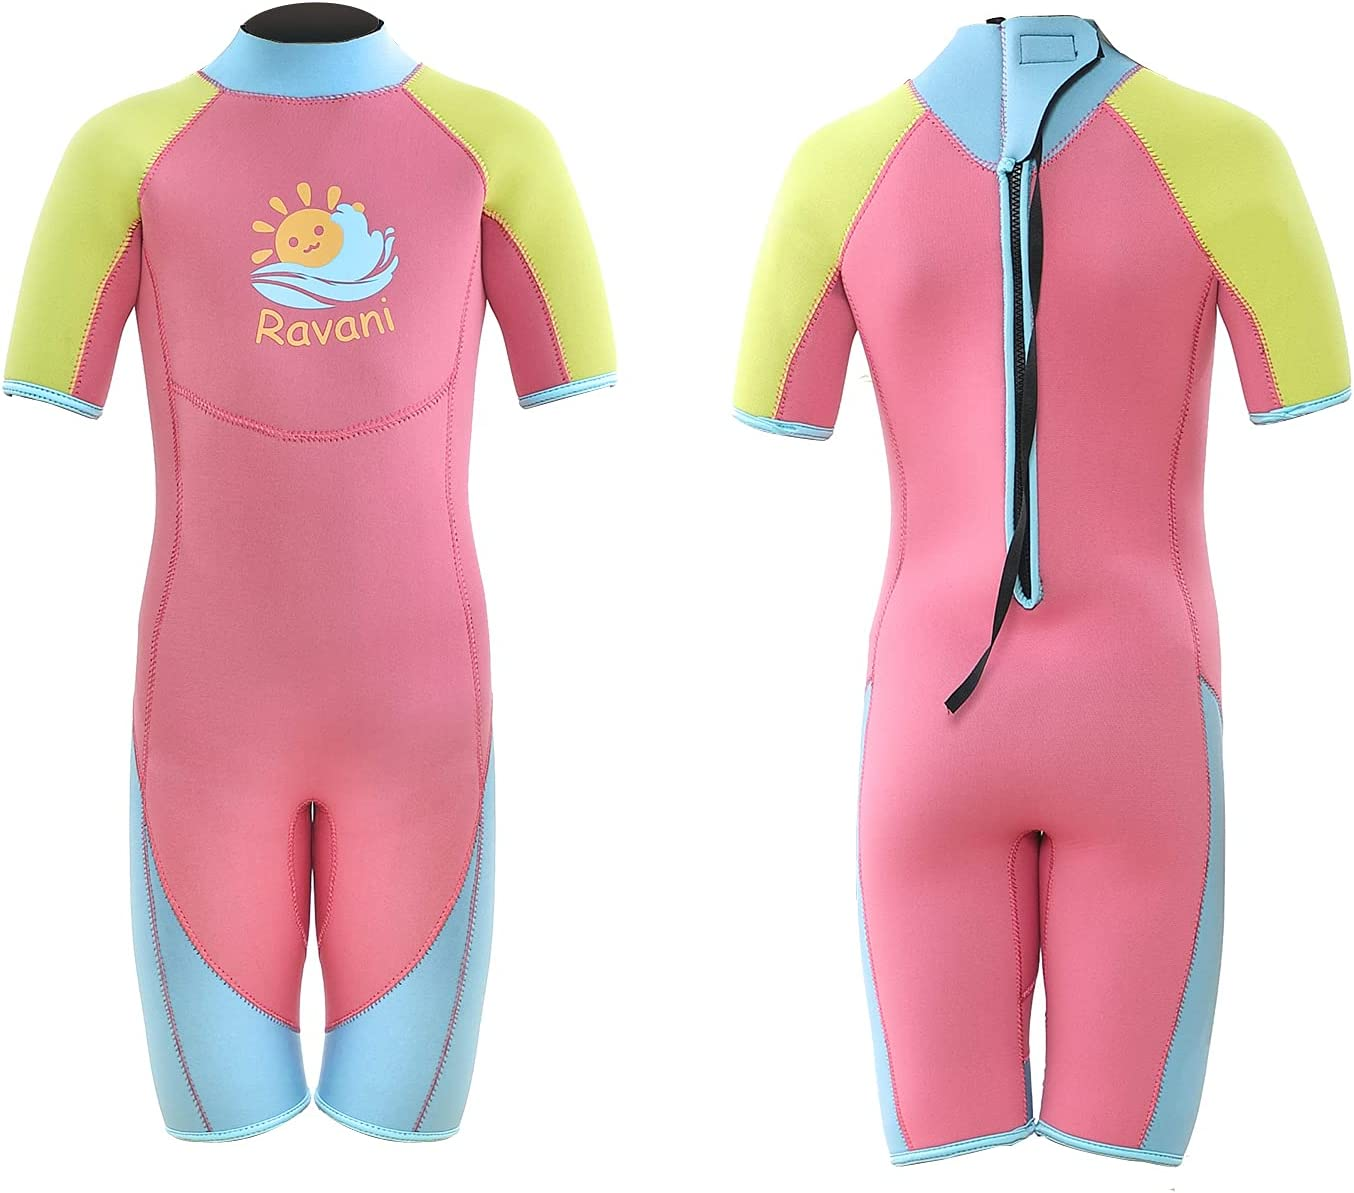 Ravani 5mm Max 64% OFF Kids Wetsuit Boys Girl New Orleans Mall Shorty Youth and